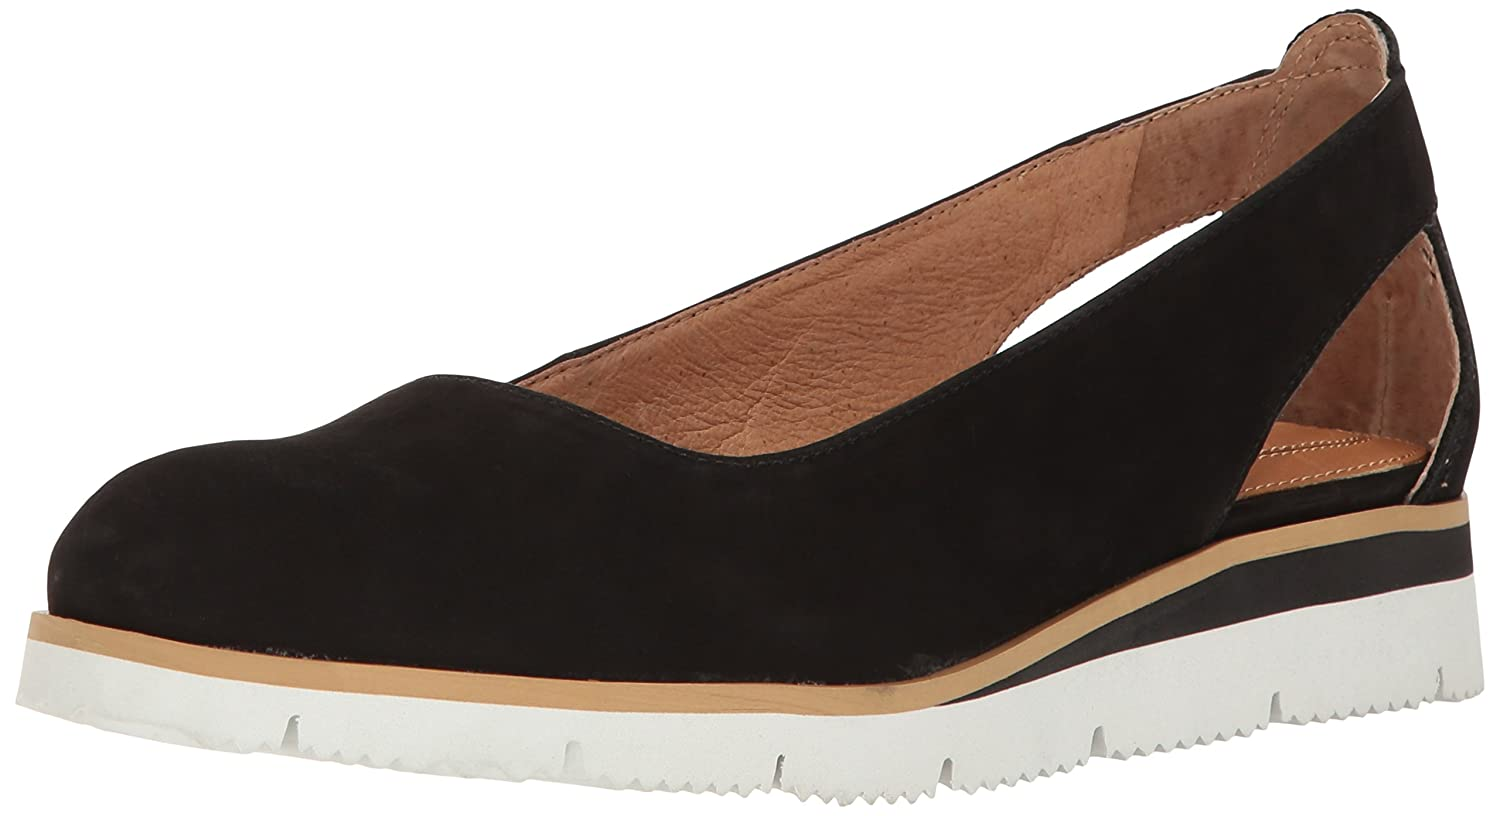 Corso Como Women's Retreat Flat B01NBE9KX7 5.5 B(M) US|Black Nubuck